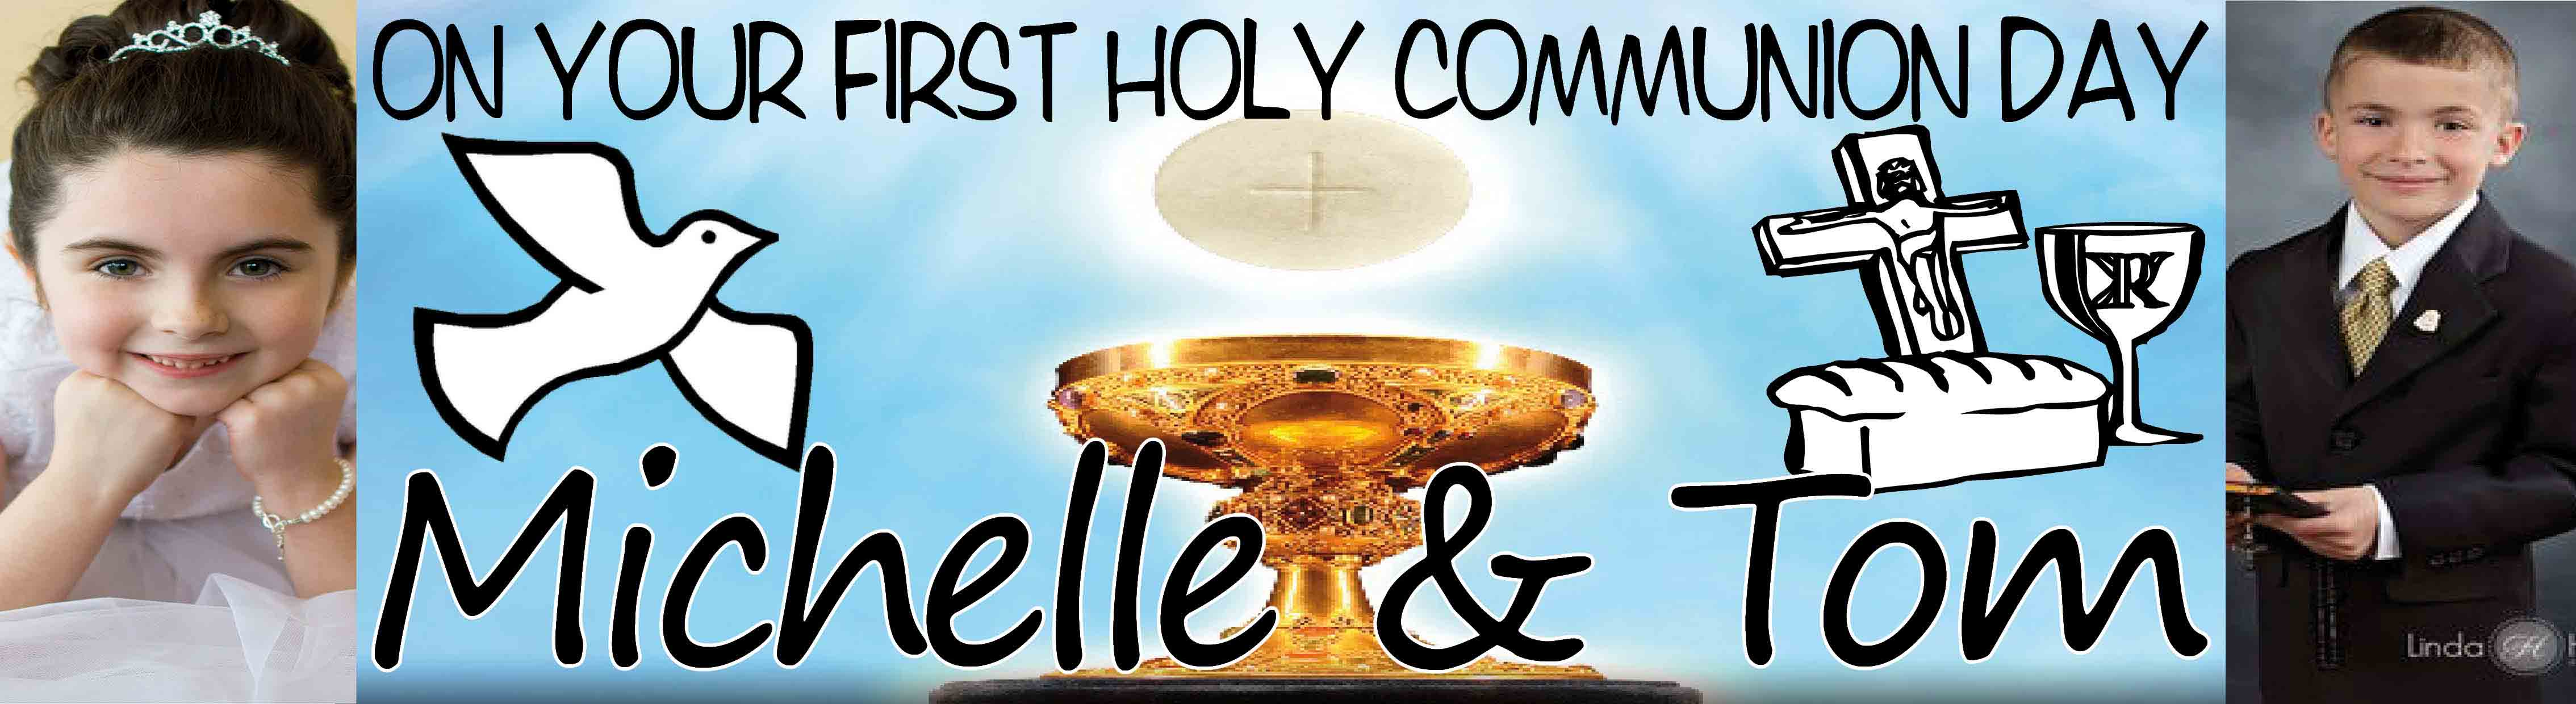 First Holy Communion Day Banner 4